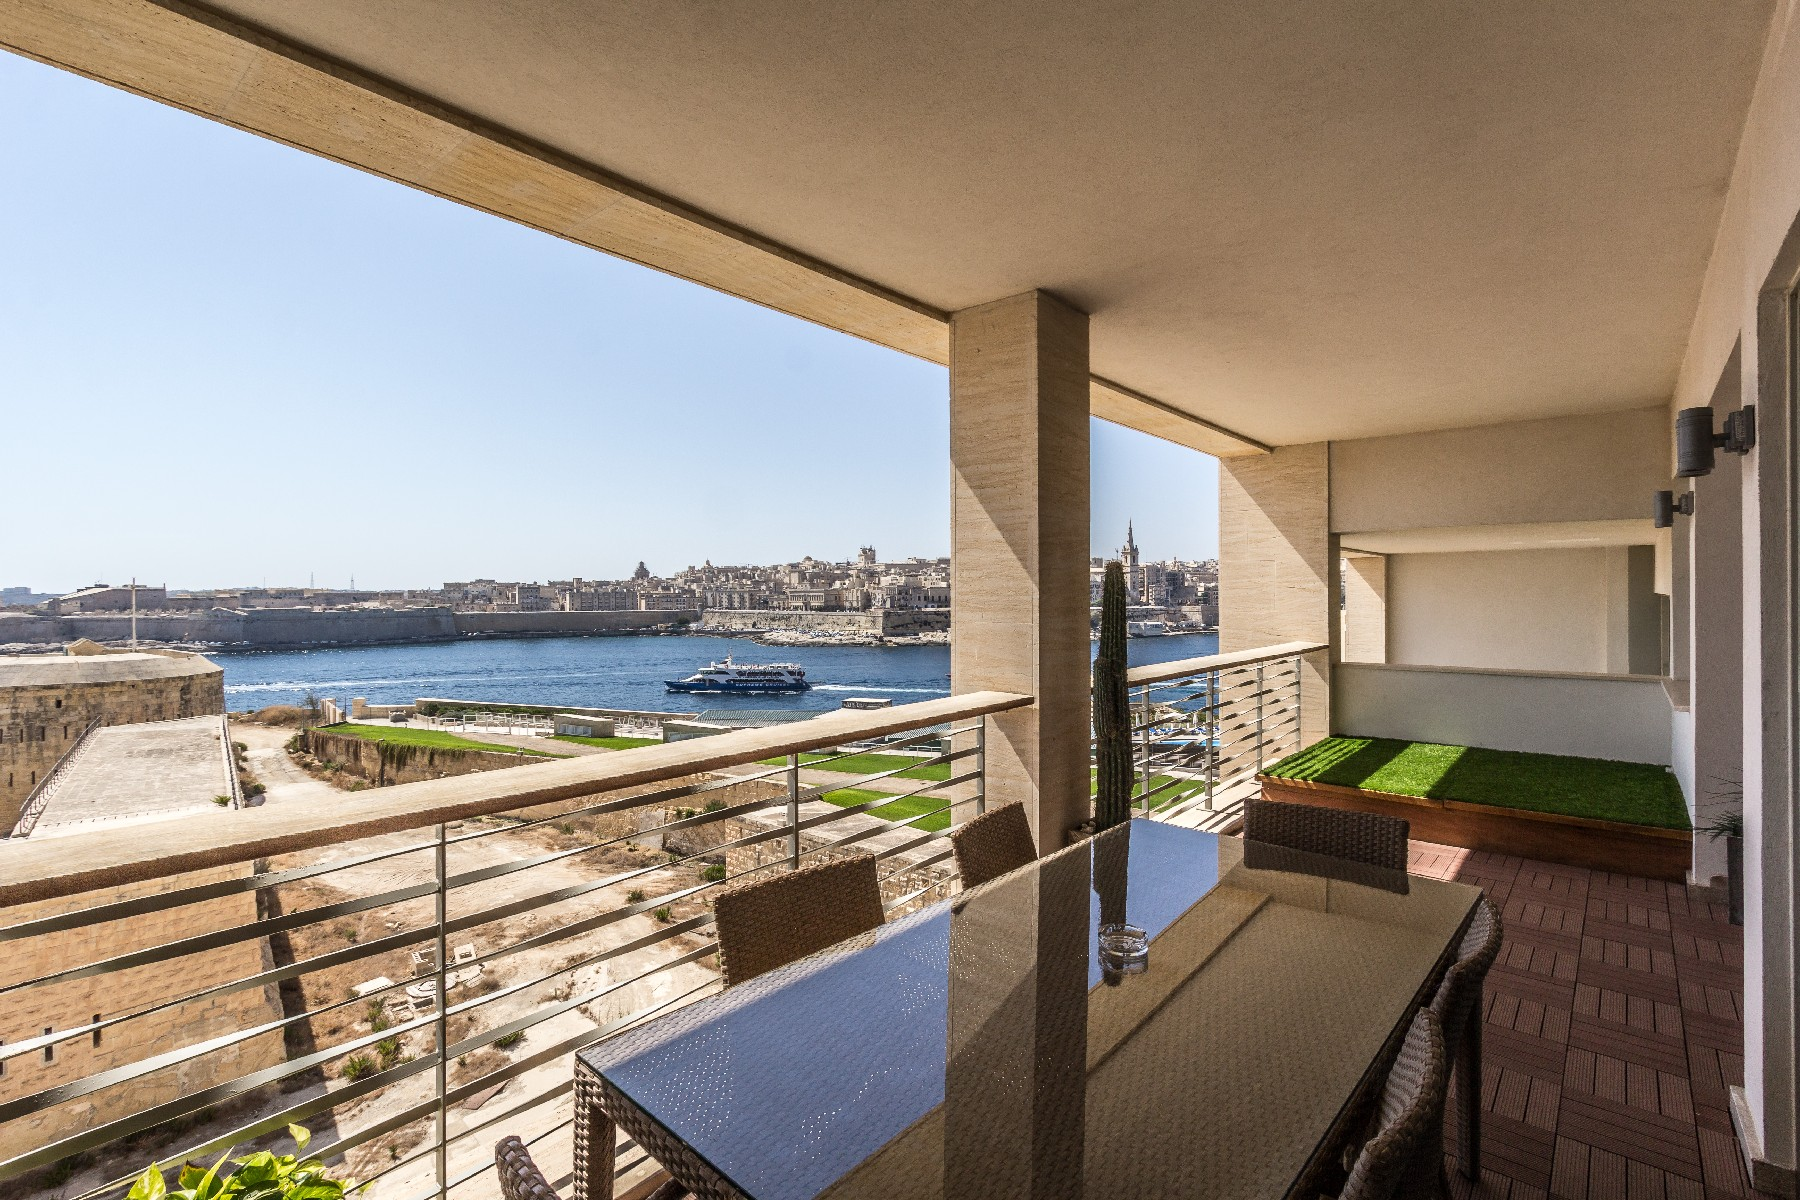 شقة للـ Sale في Seafront Apartment Tigne Point, Sliema, Malta